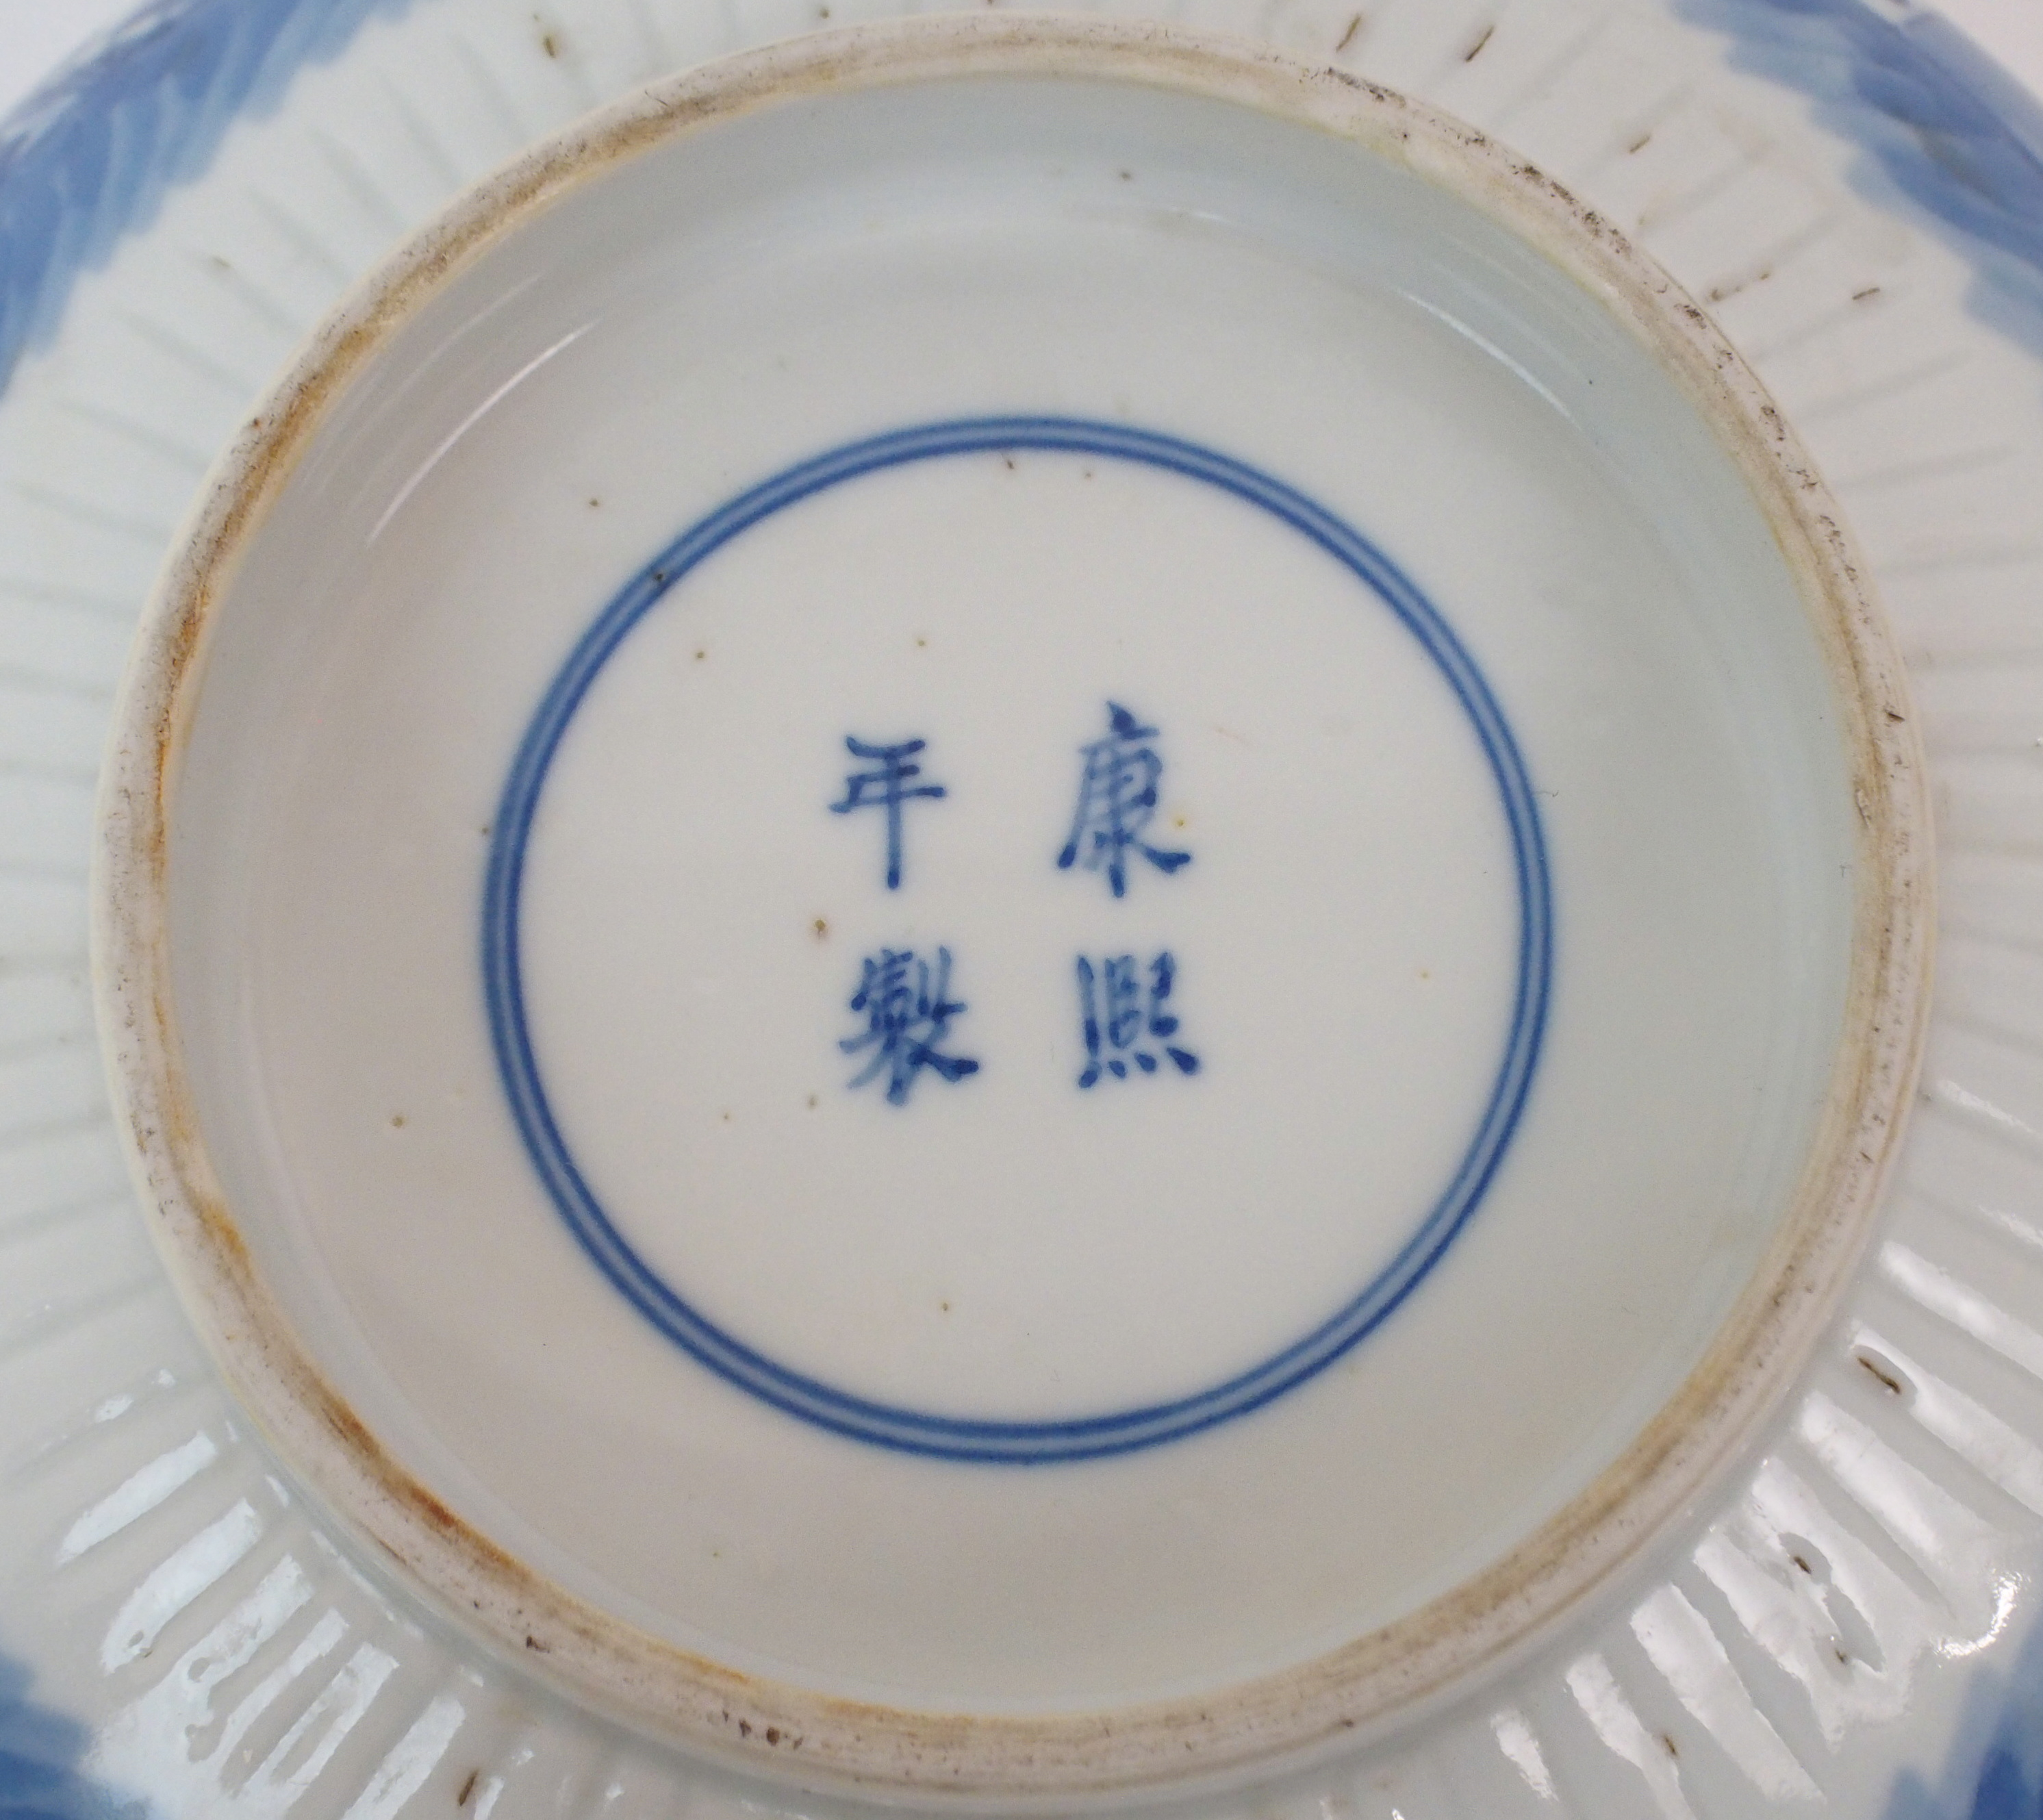 Lot 51 - A CHINESE BLUE AND WHITE BOWL painted with panels of landscapes divided by foliage, the interior